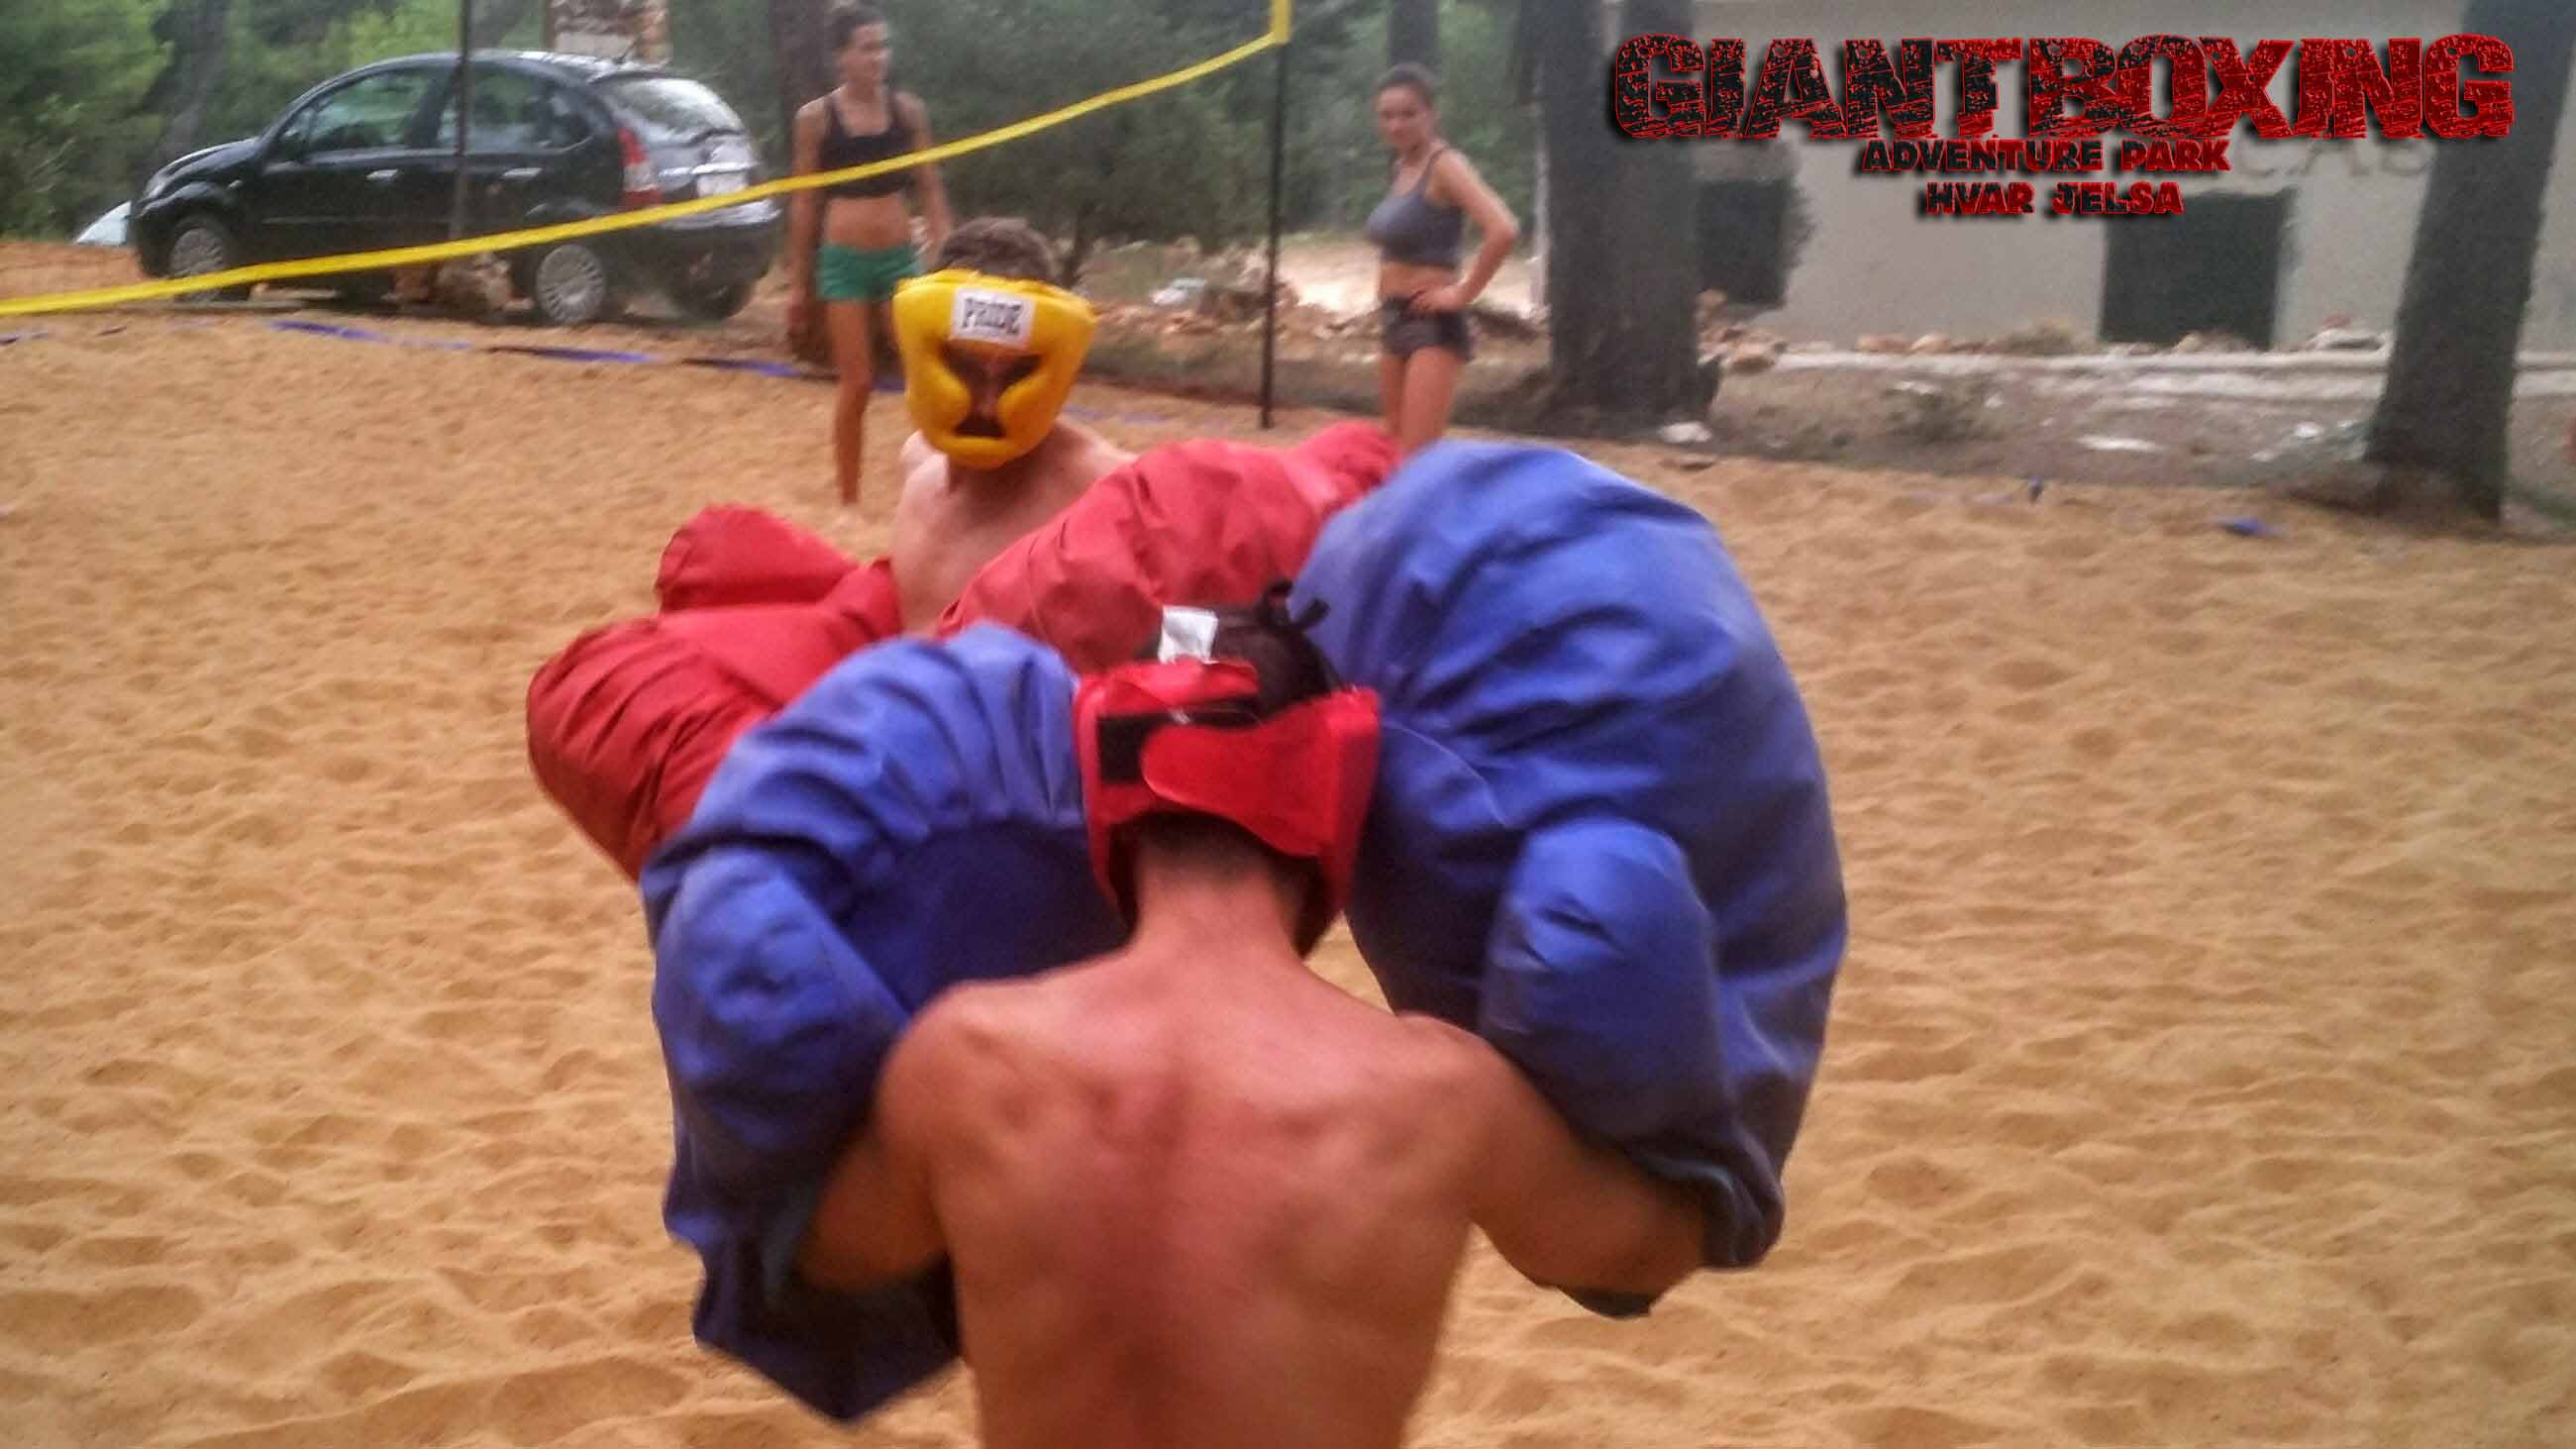 Hen activities Hvar -Giant boxing